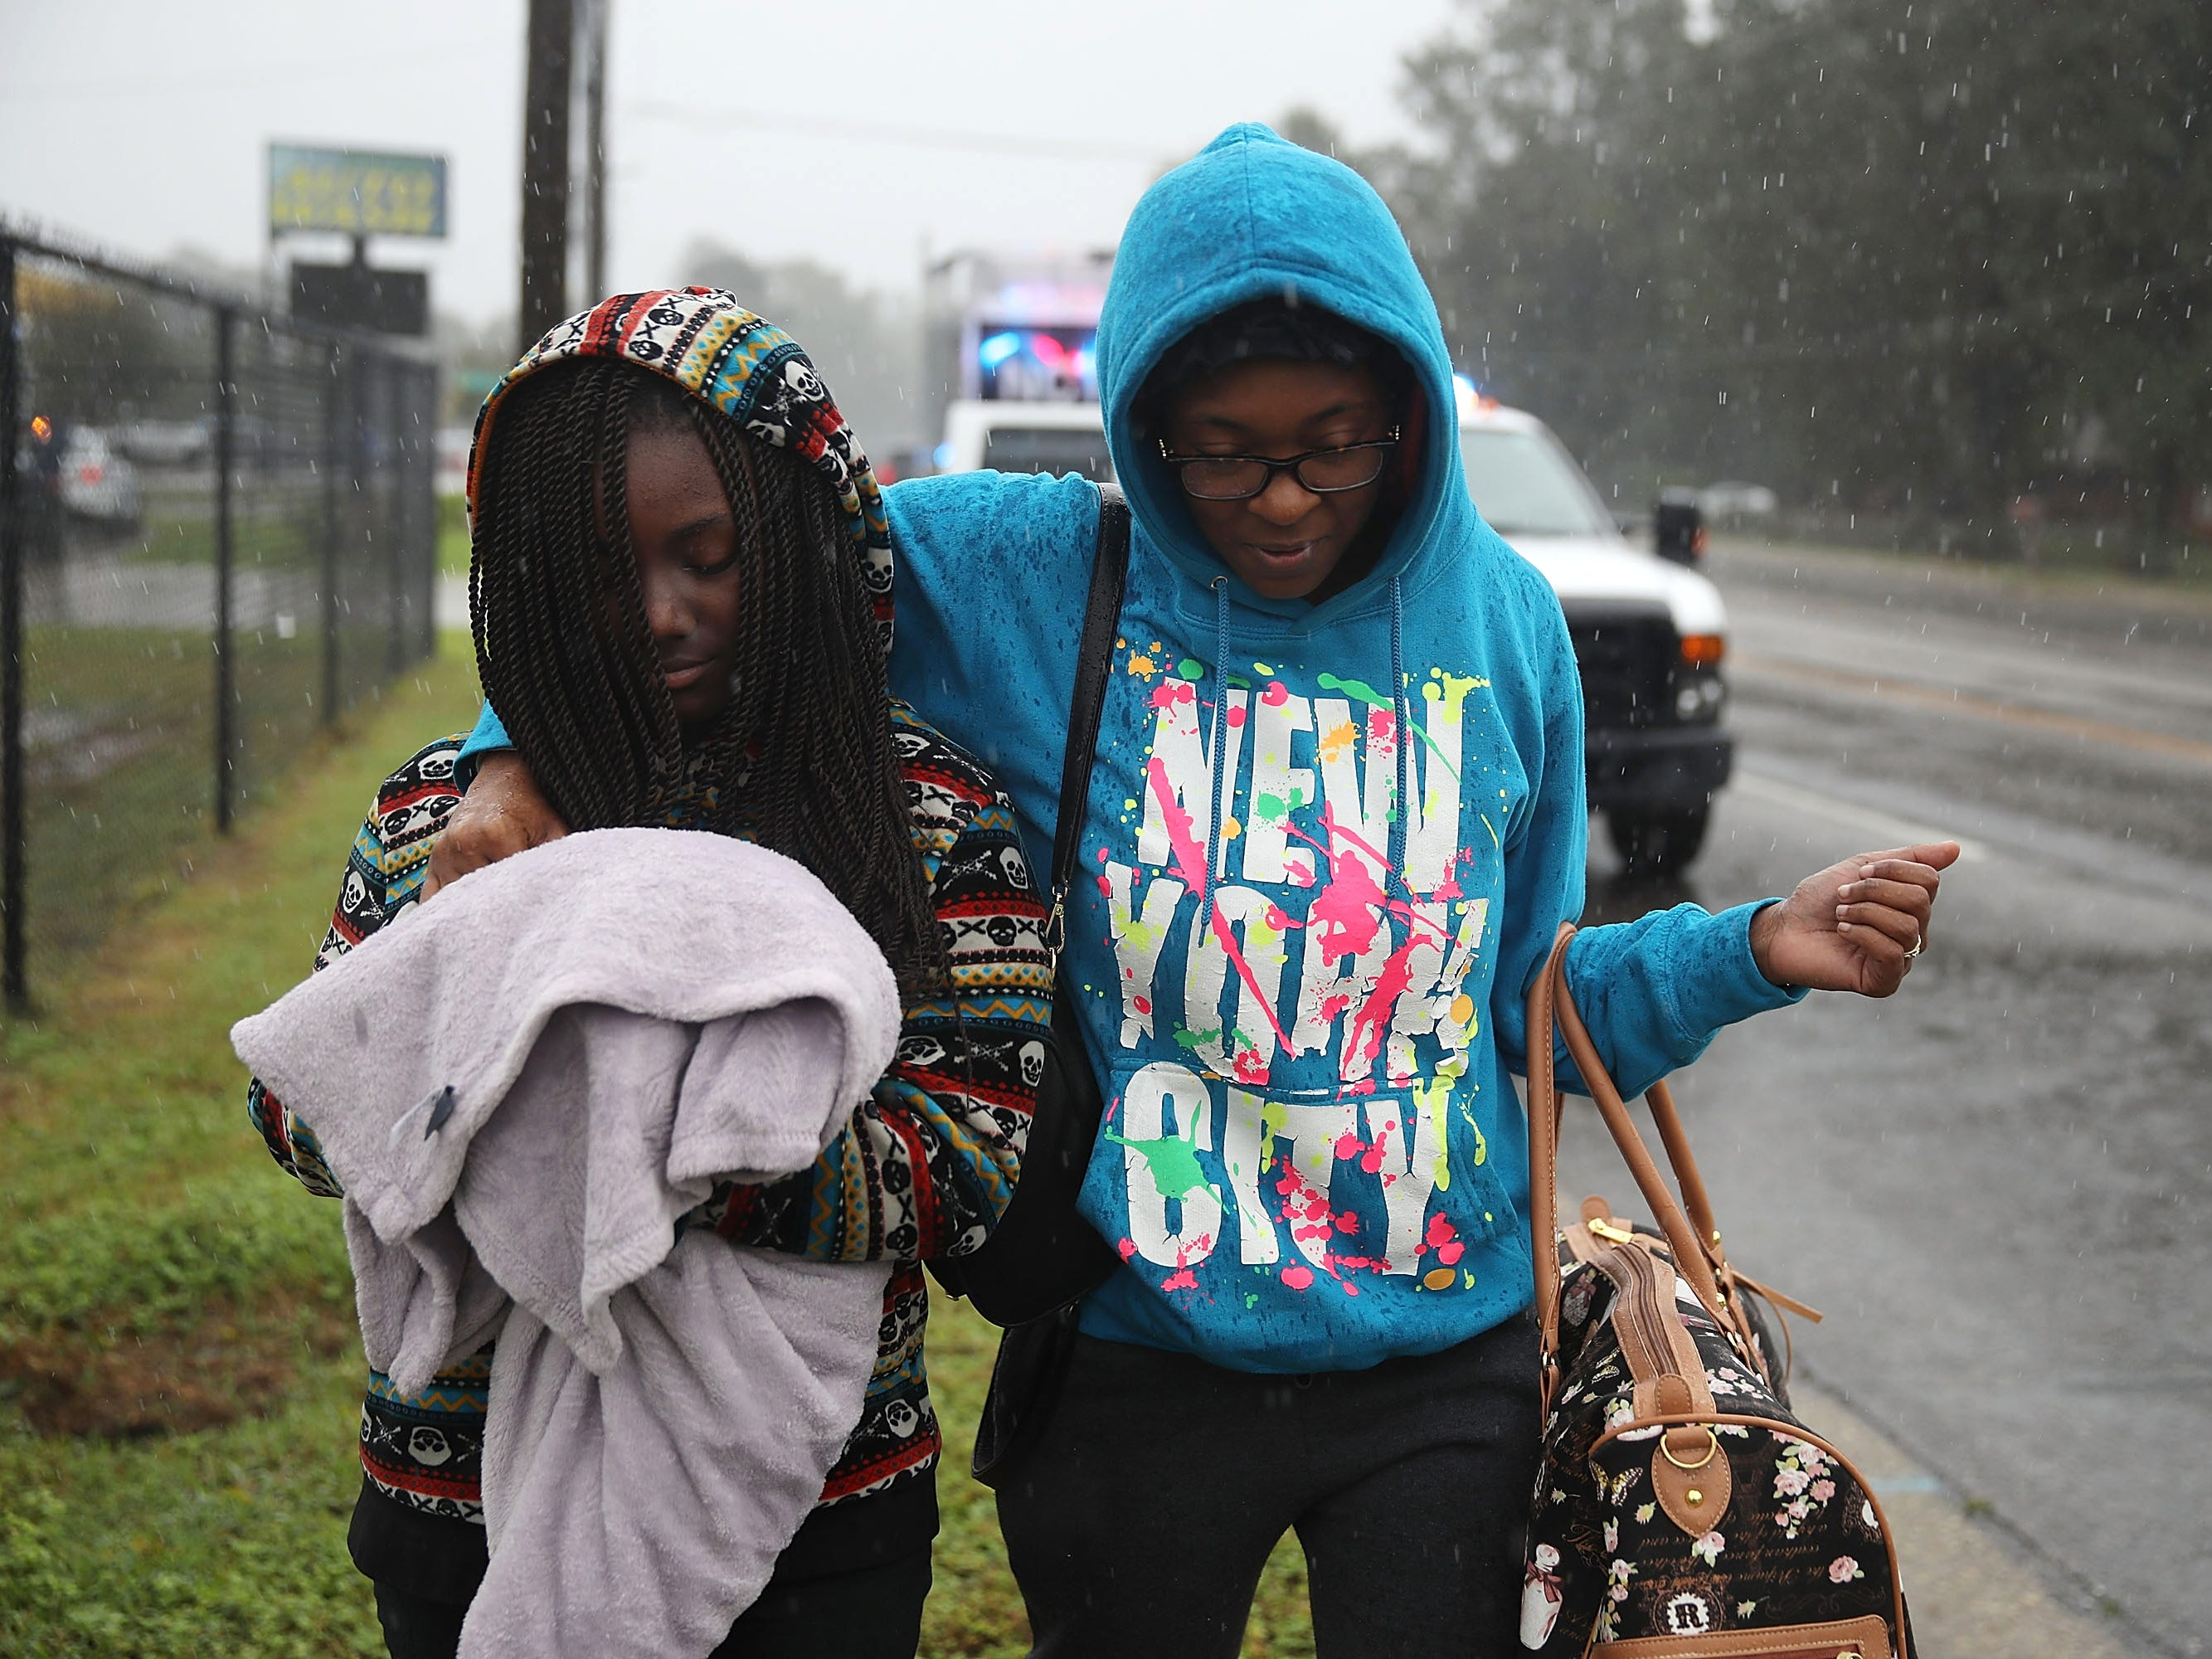 Naiya Willis, left, and Candice Willis walk to an evacuation bus as they leave their home ahead of possible flooding after Hurricane Florence passed through the area on Sept. 16, 2018 in Fayetteville, N.C.